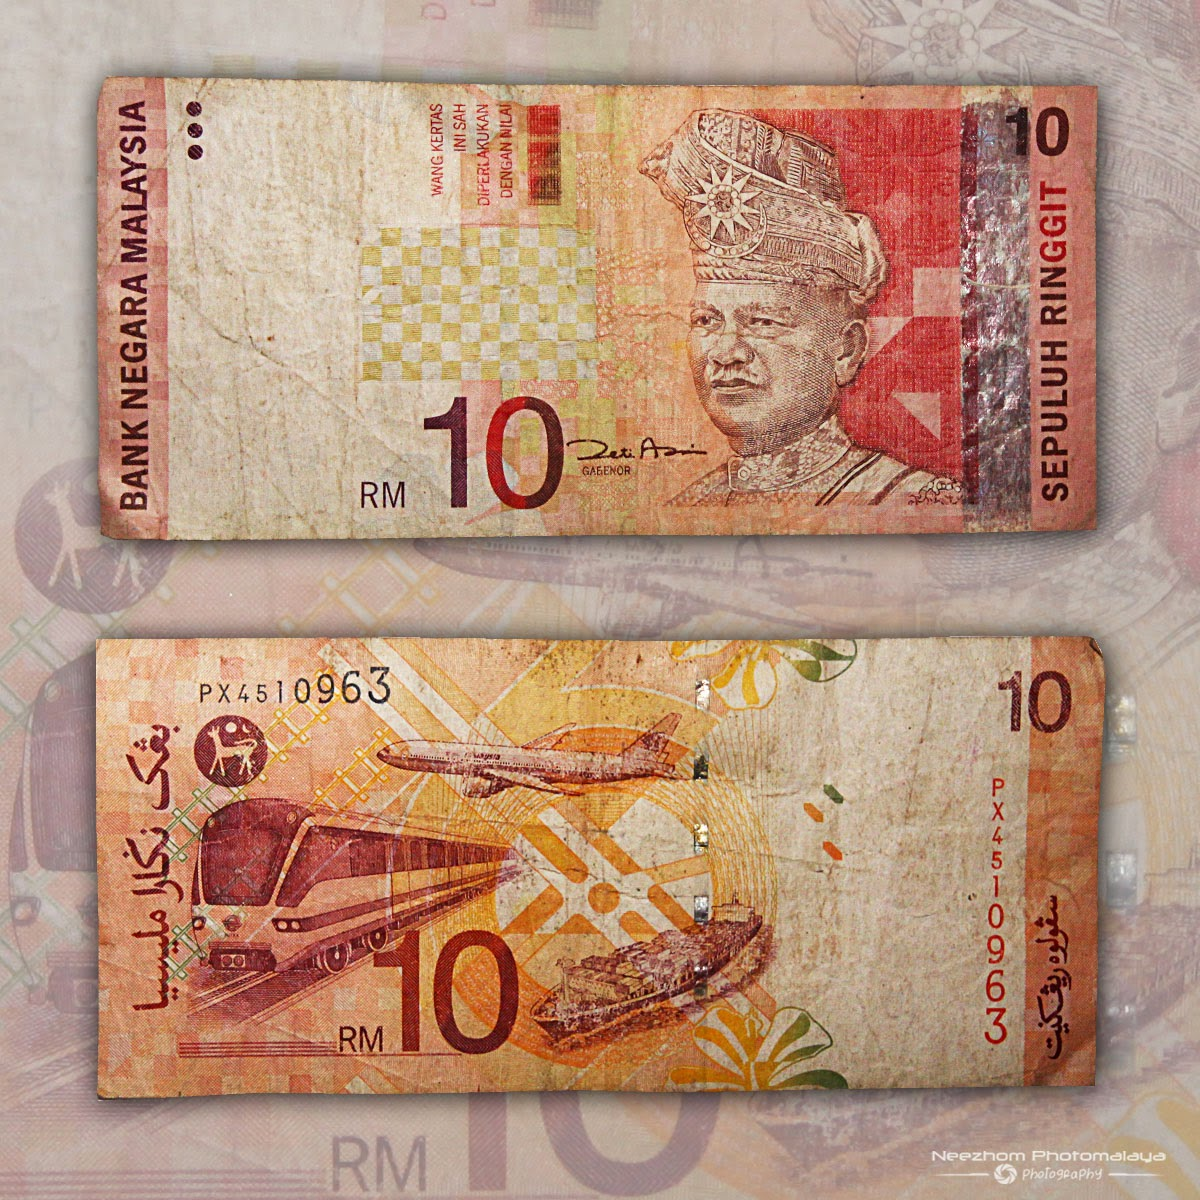 Malaysia 10 Ringgit 3rd series banknote